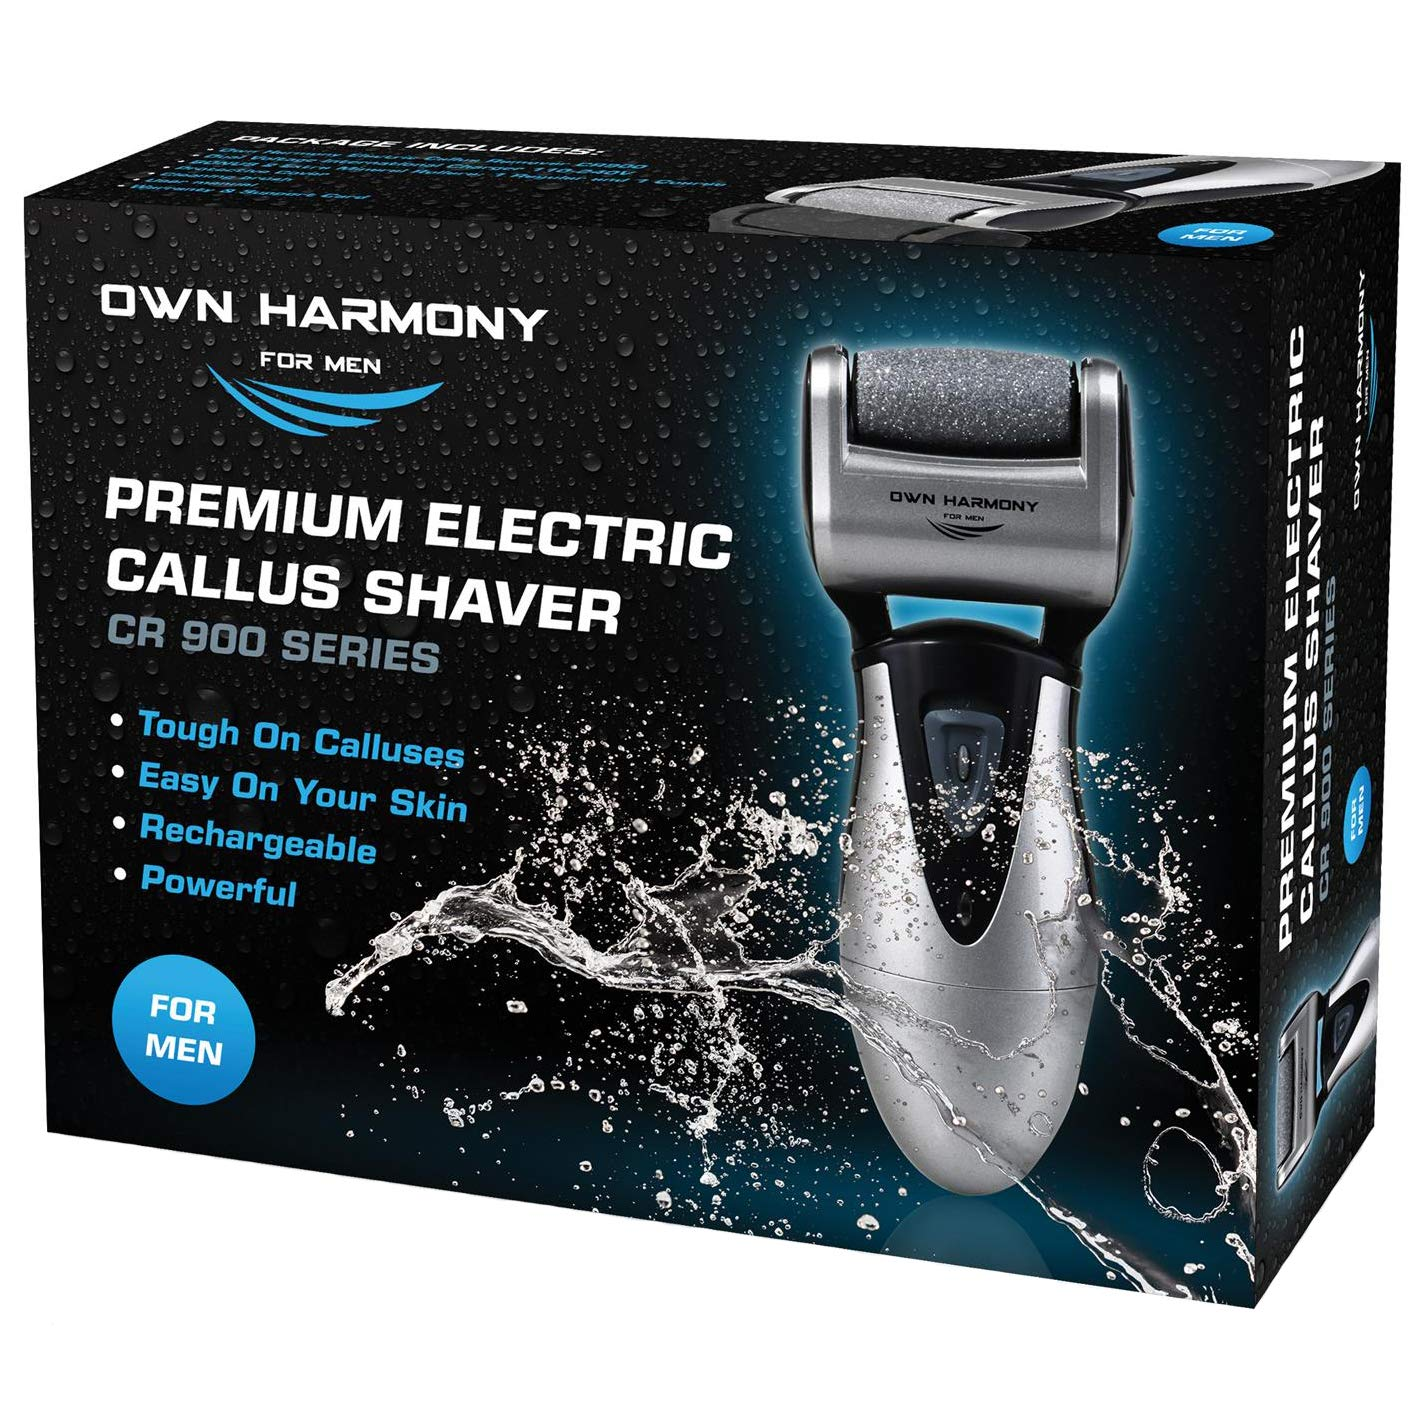 Callus Remover: Electric Rechargeable Pedicure Tools for Men by Own Harmony -3 Rollers (Tested Powerful) Best Foot File, Professional Spa Electronic Micro Pedi Feet Care Perfect for Hard Cracked Skin